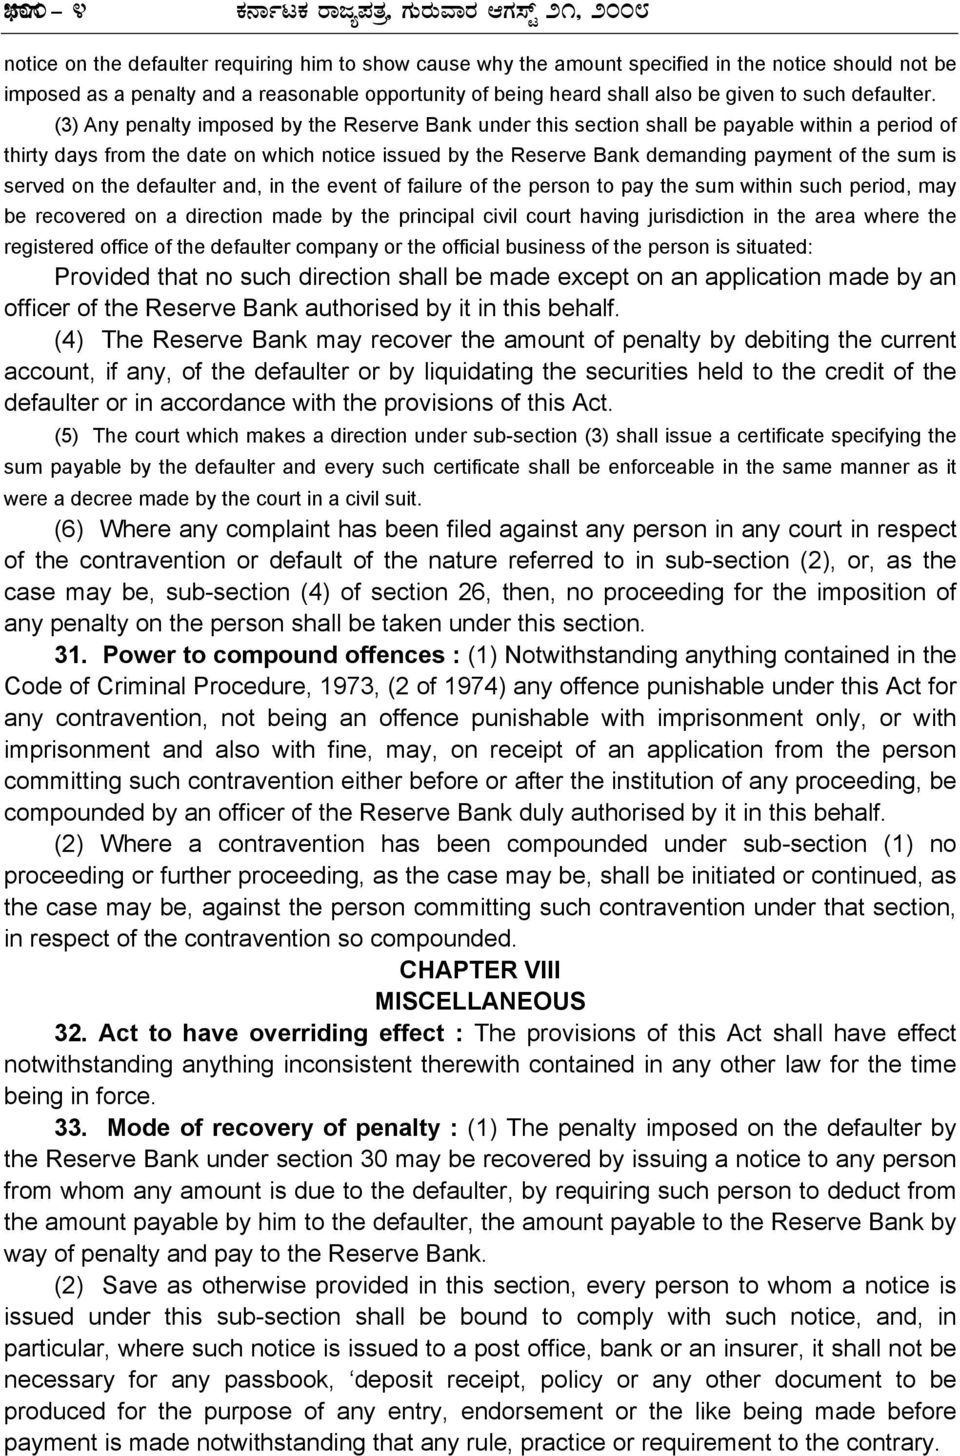 (3) Any penalty imposed by the Reserve Bank under this section shall be payable within a period of thirty days from the date on which notice issued by the Reserve Bank demanding payment of the sum is